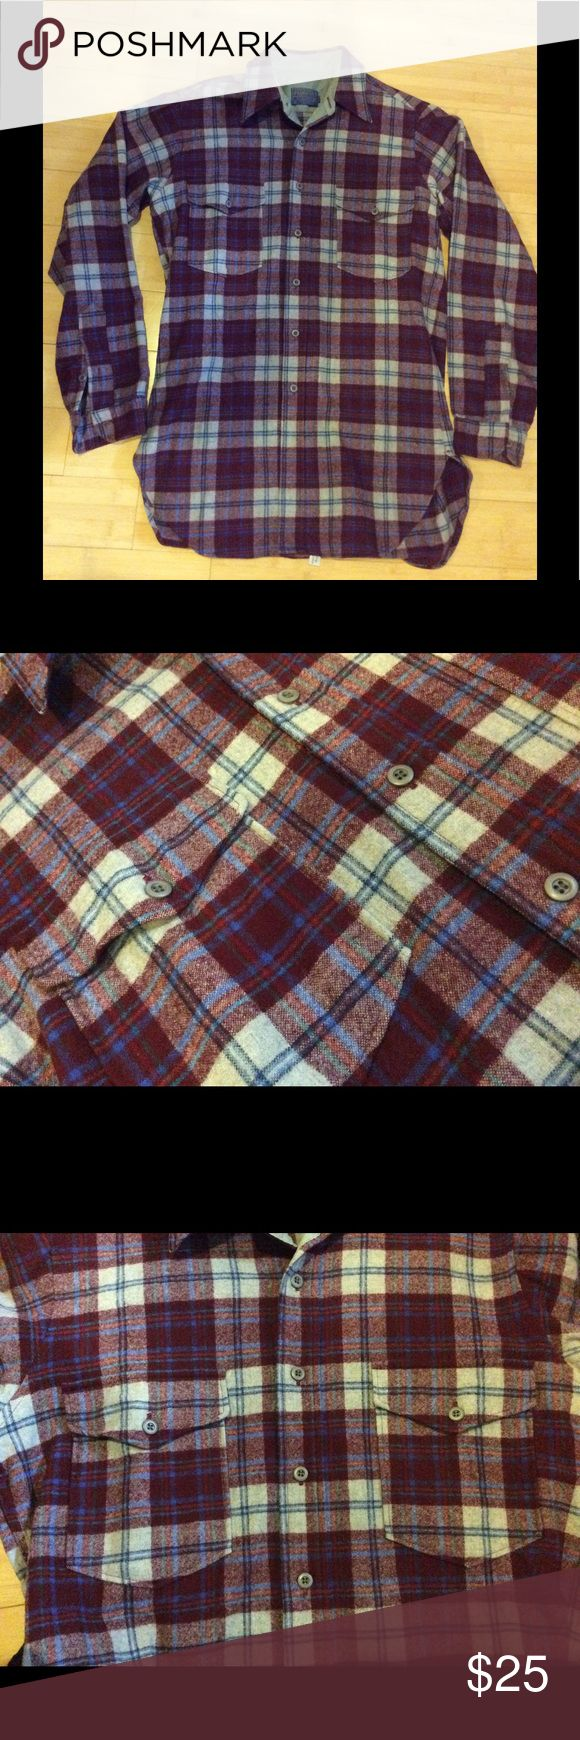 Men's 100% wool Pendleton shirt, size medium LONG Men's long sleeve 100% wool shirt, size medium LONG. Burgundy and cream plaid with blue accents, truest colors in second photo. Neck is lined with smooth poly-type material to prevent itching. There is a bit of discoloration to this lining. Perfect condition otherwise..Two patch pockets on the front with button flaps. Dry clean only. Pendleton Shirts Casual Button Down Shirts